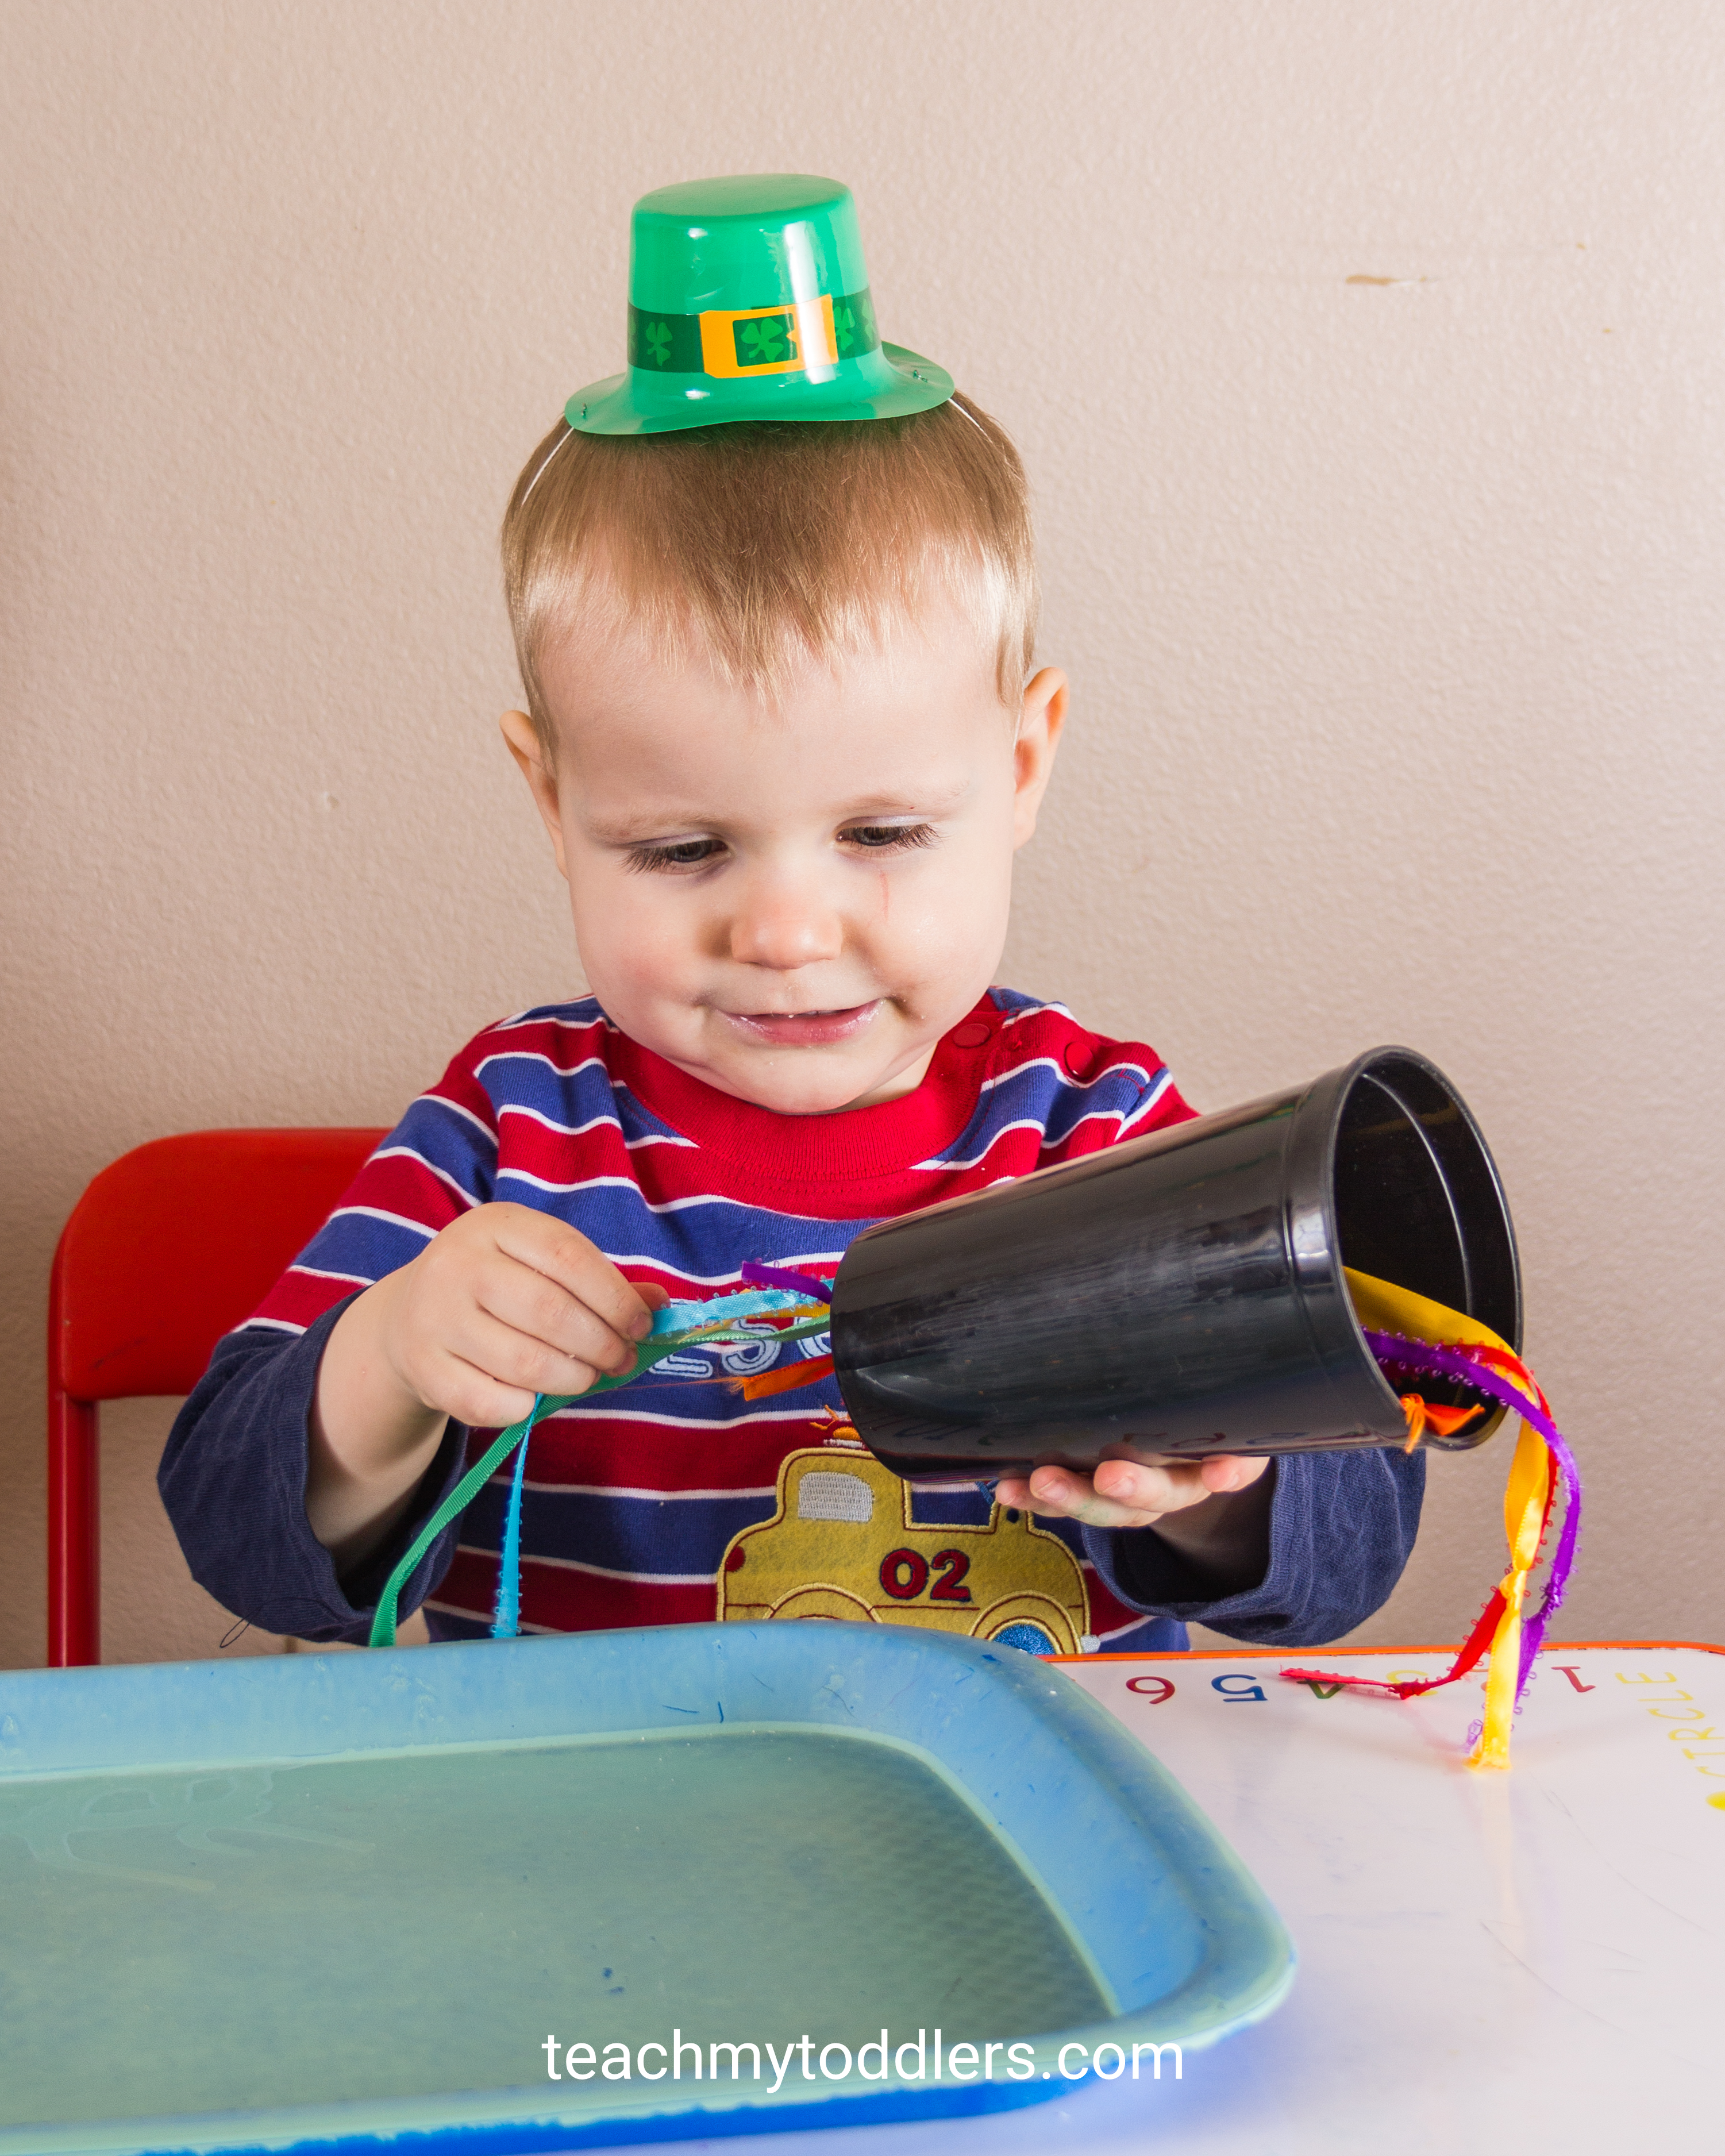 Use these exciting St. Patrick's Day activities to teach toddlers about st. patrick's day